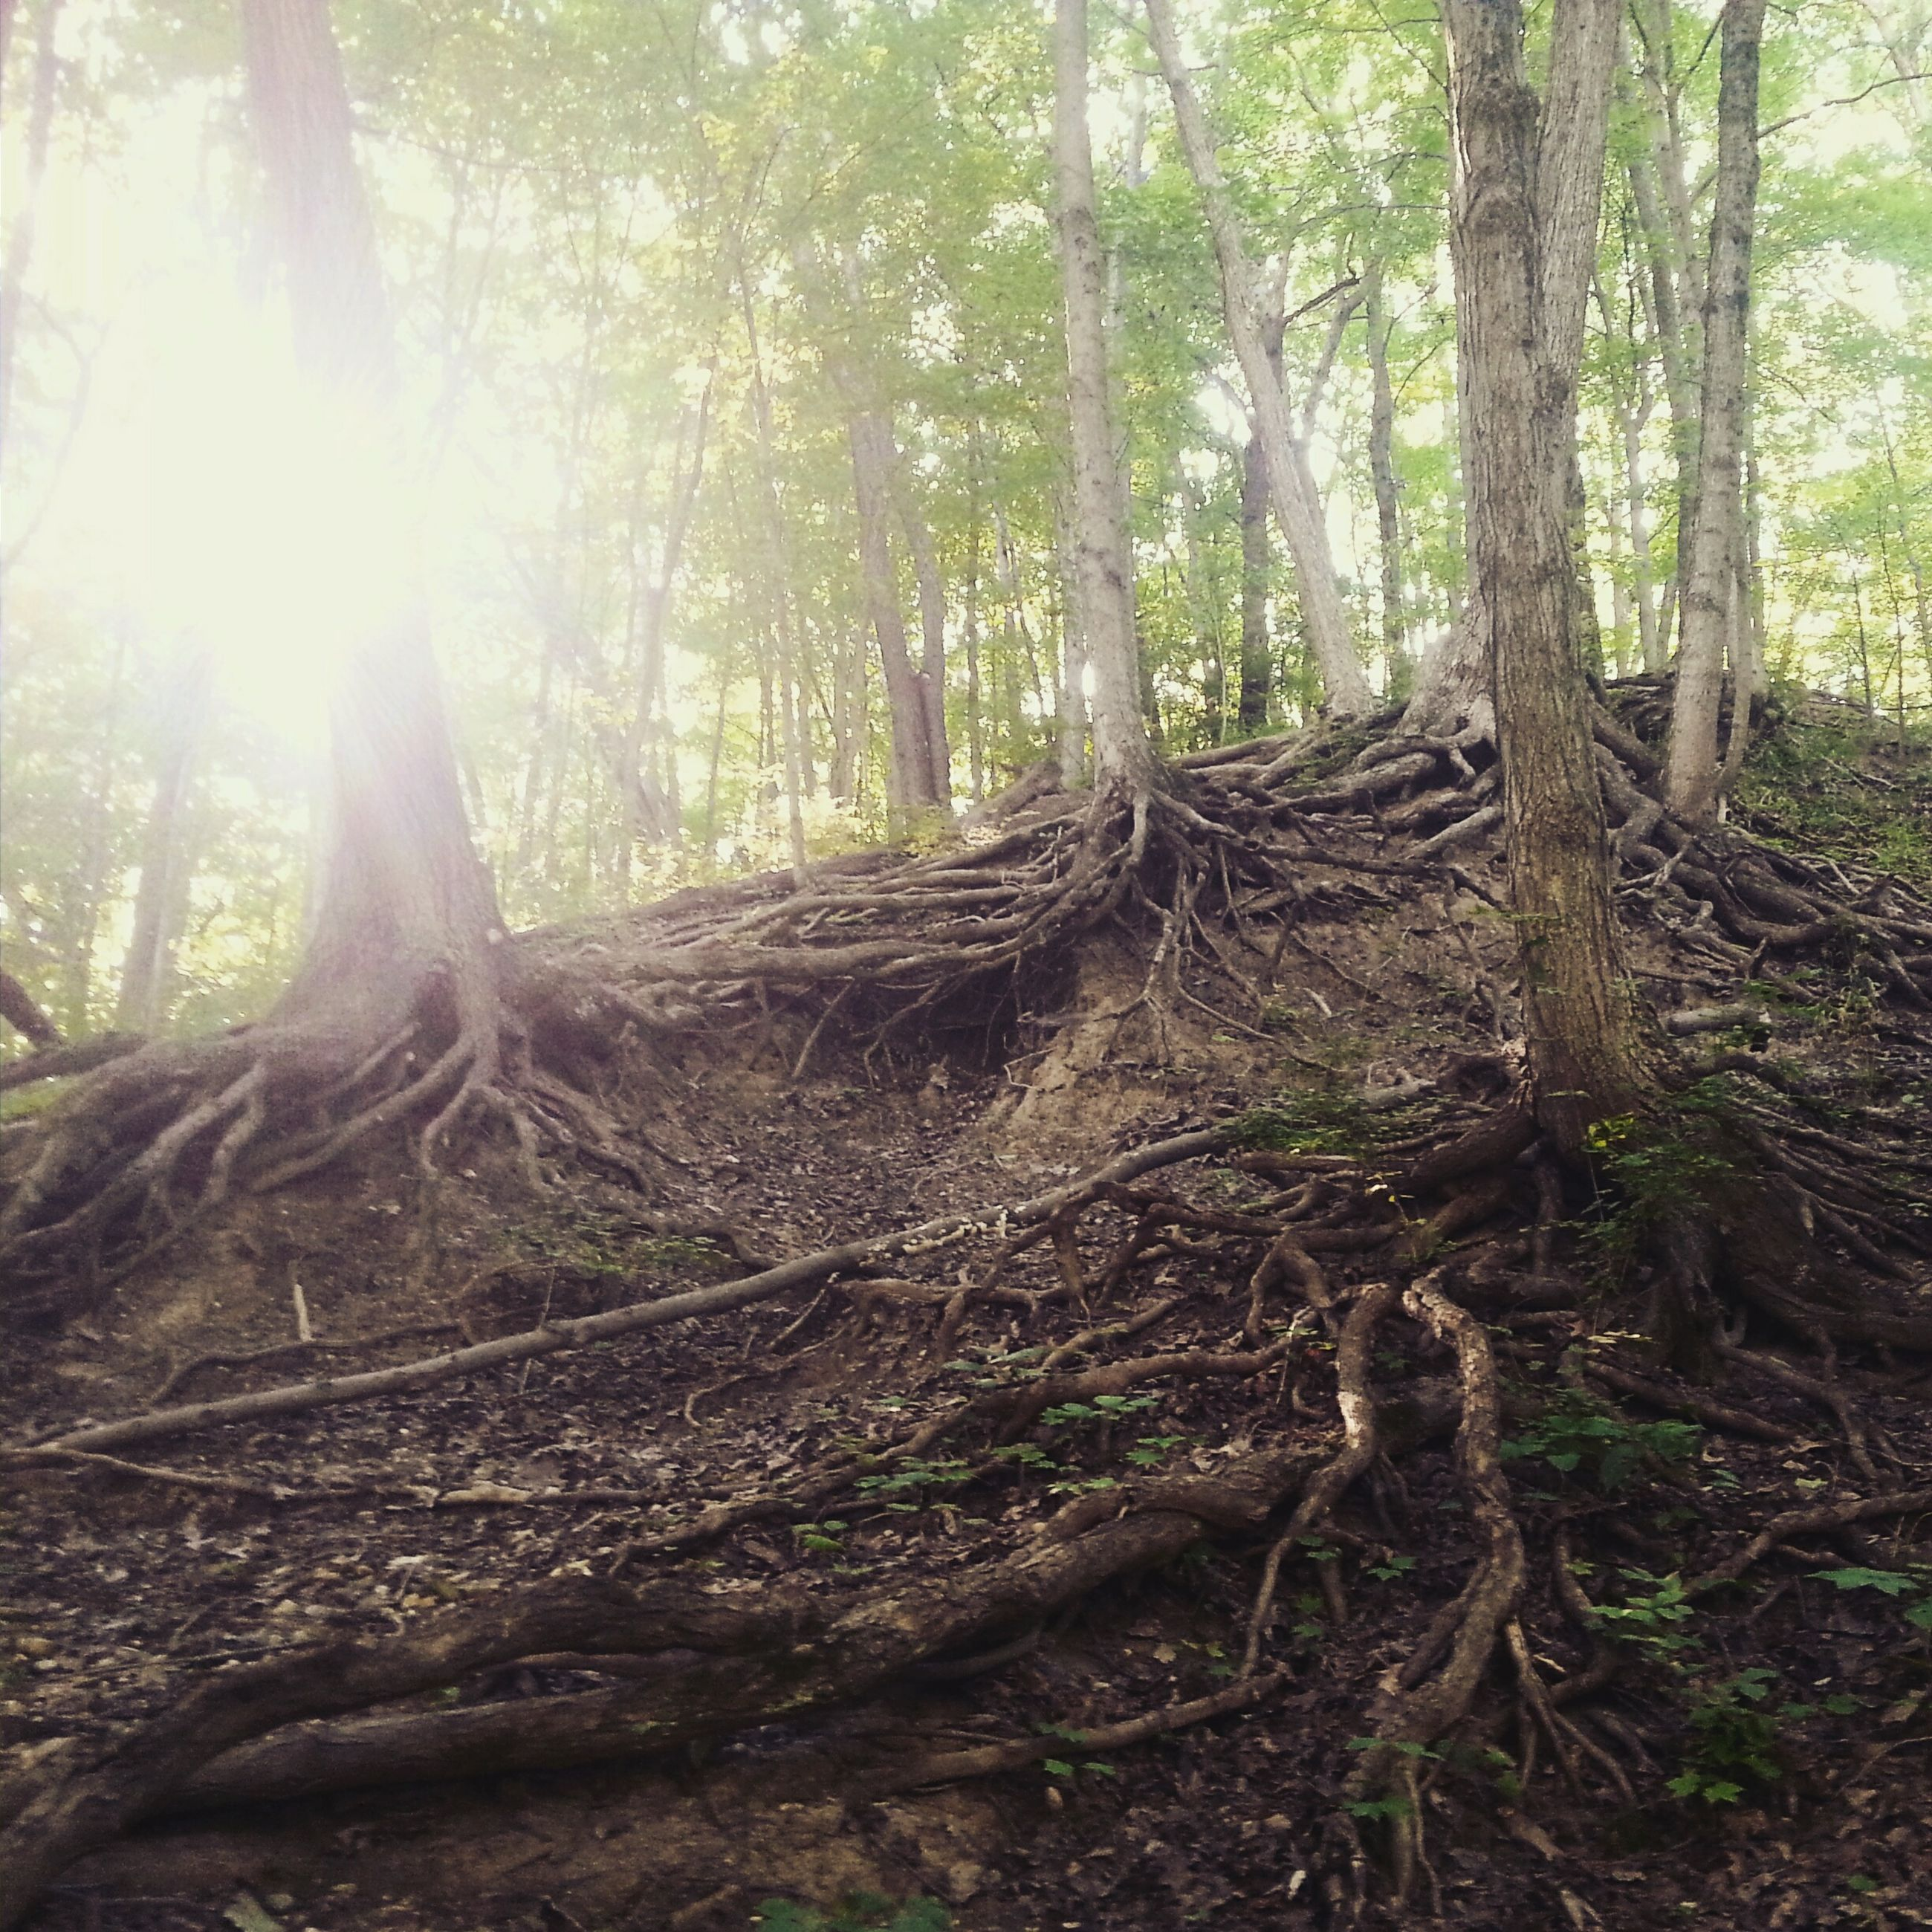 tree, forest, sunbeam, sun, sunlight, tranquility, tree trunk, woodland, lens flare, nature, tranquil scene, growth, beauty in nature, scenics, landscape, non-urban scene, sunny, day, outdoors, no people